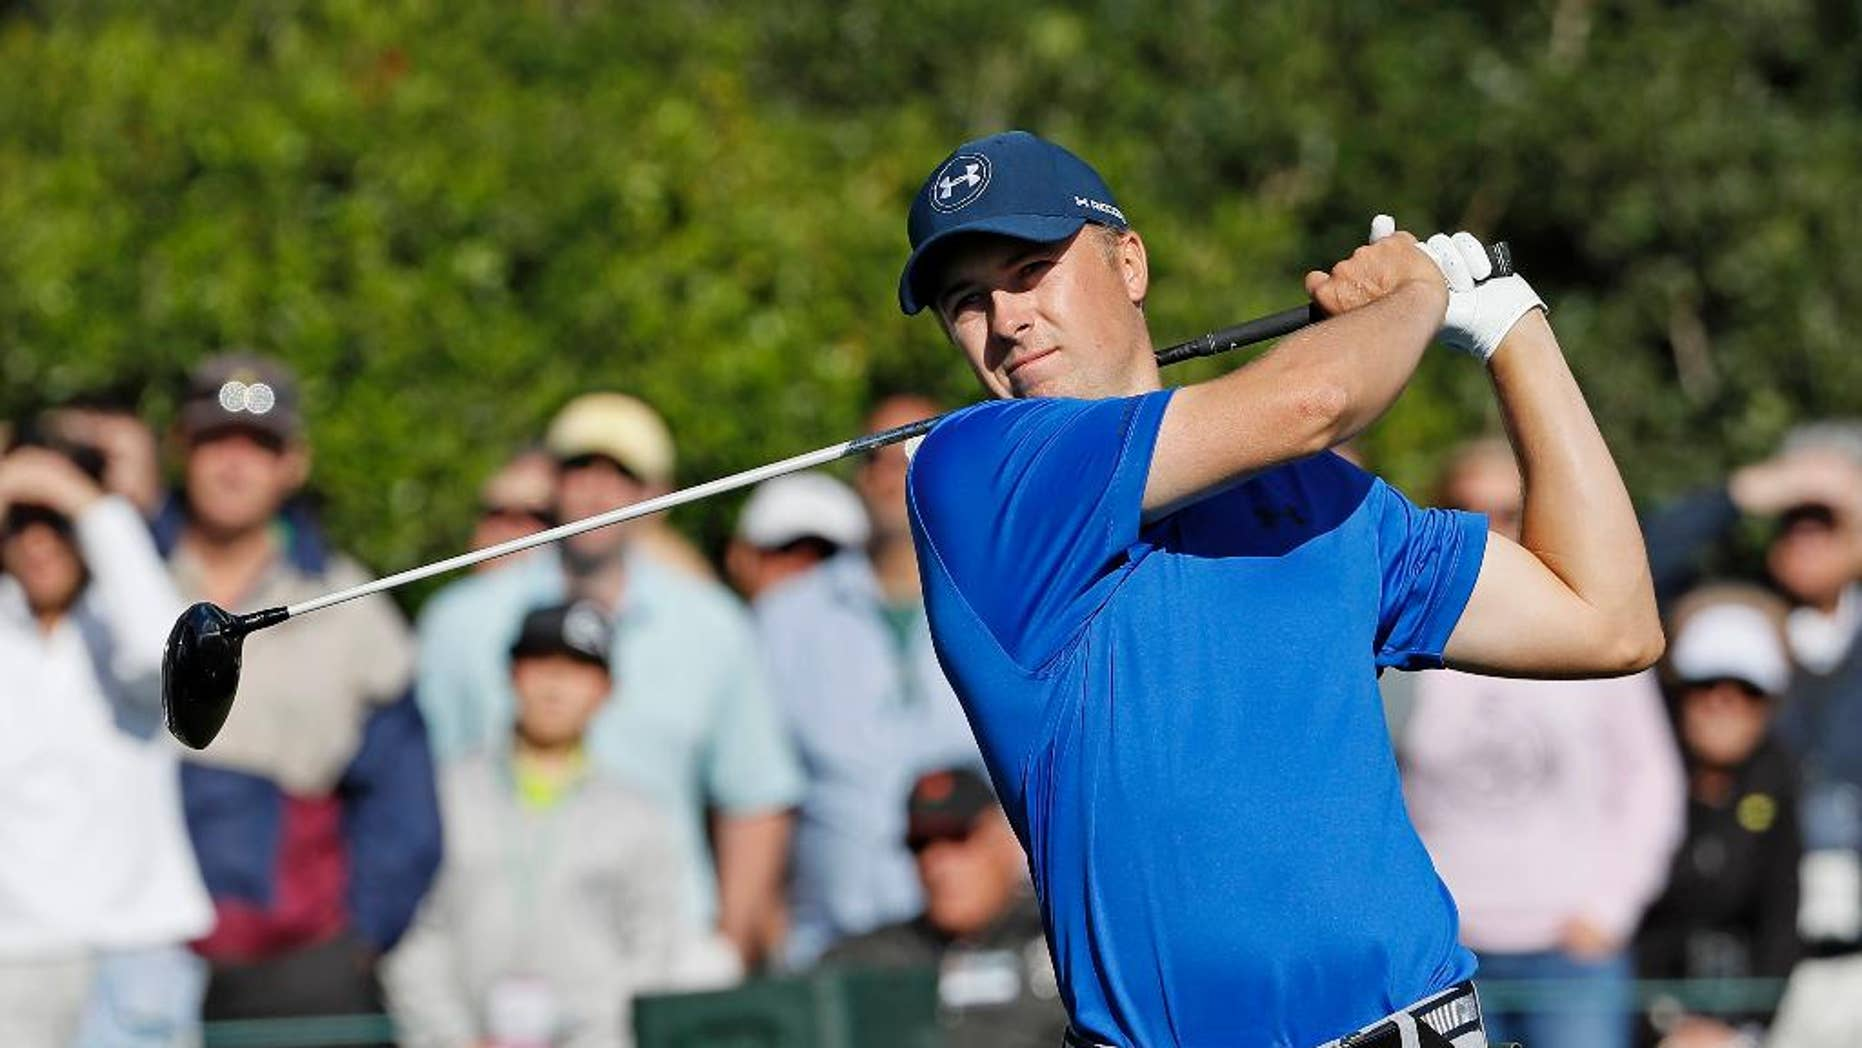 FILE - In this Friday, April 8, 2016 file photo, Jordan Spieth tees off on the 15th hole during the second round of the Masters golf tournament in Augusta, Ga. Jordan Spieth understands his meltdown at the end of the Masters will follow him. And three weeks later Spieth's not quite ready to say he's over letting a five-shot in the final round morph into that awkward ceremony in the Butler Cabin that ended with him slipping the green jacket on Danny Willett following an ugly and very public collapse.(AP Photo/David J. Phillip, File)